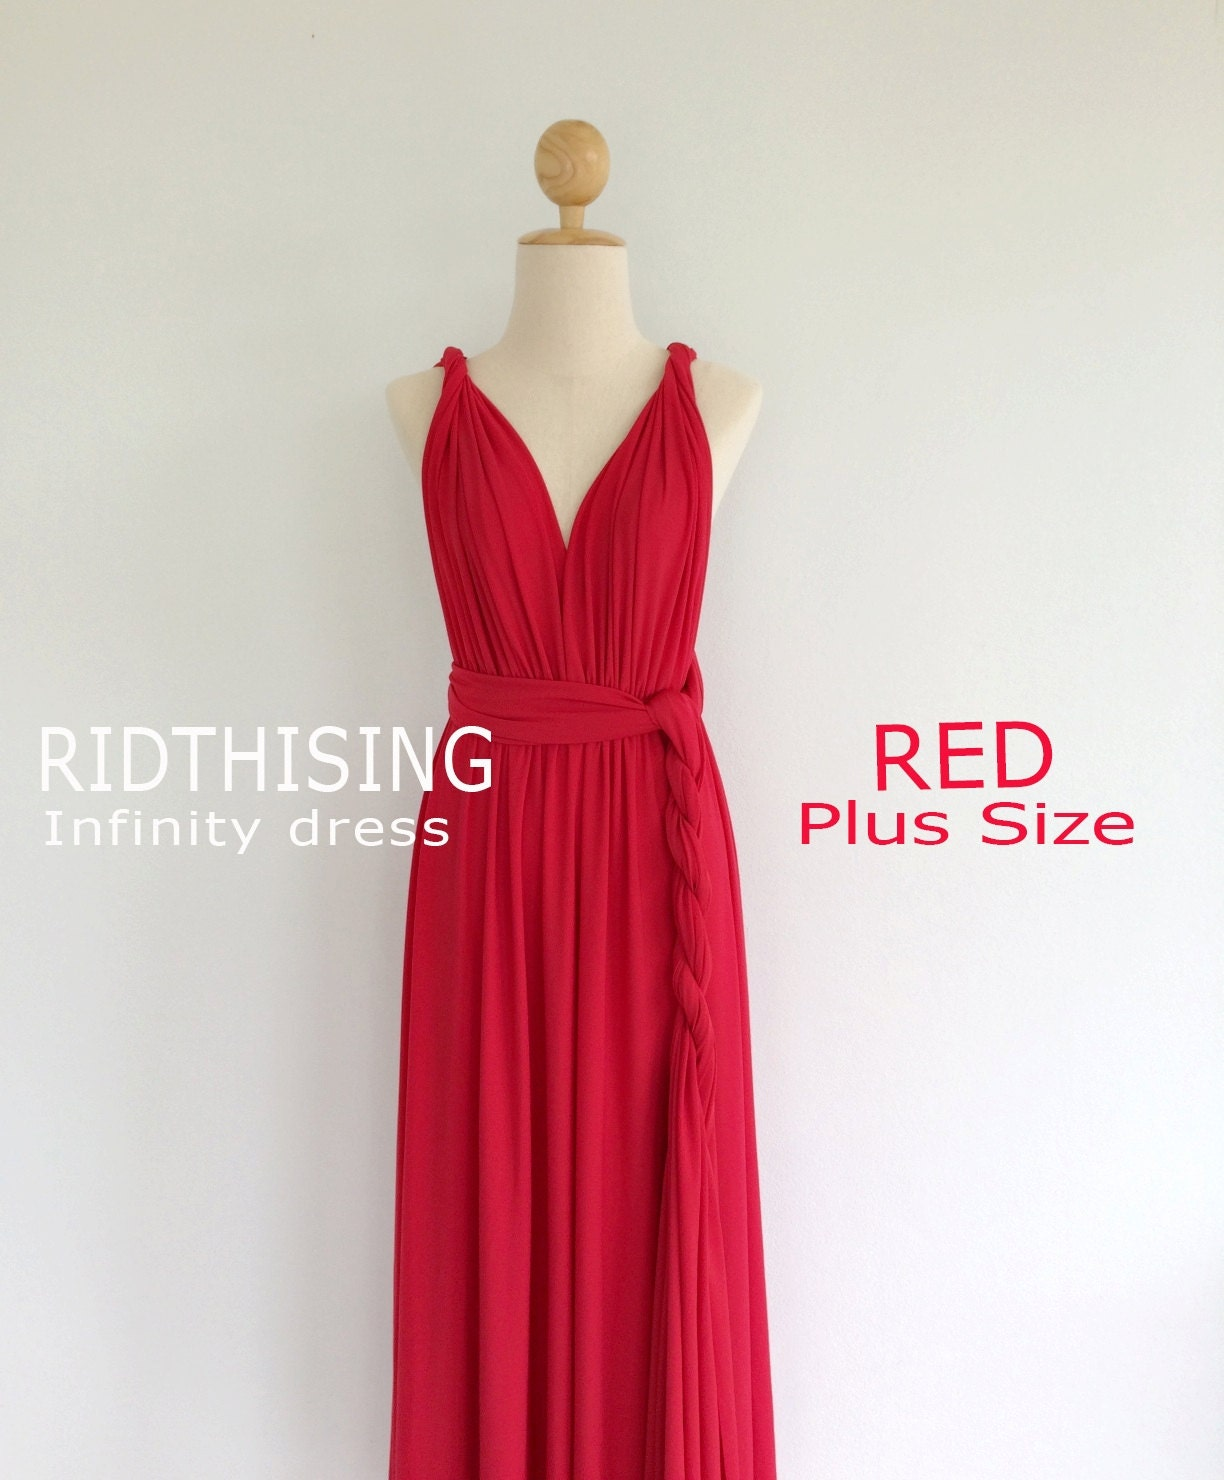 Plus Size Red Infinity Dress Bridesmaid Dress Prom Dress